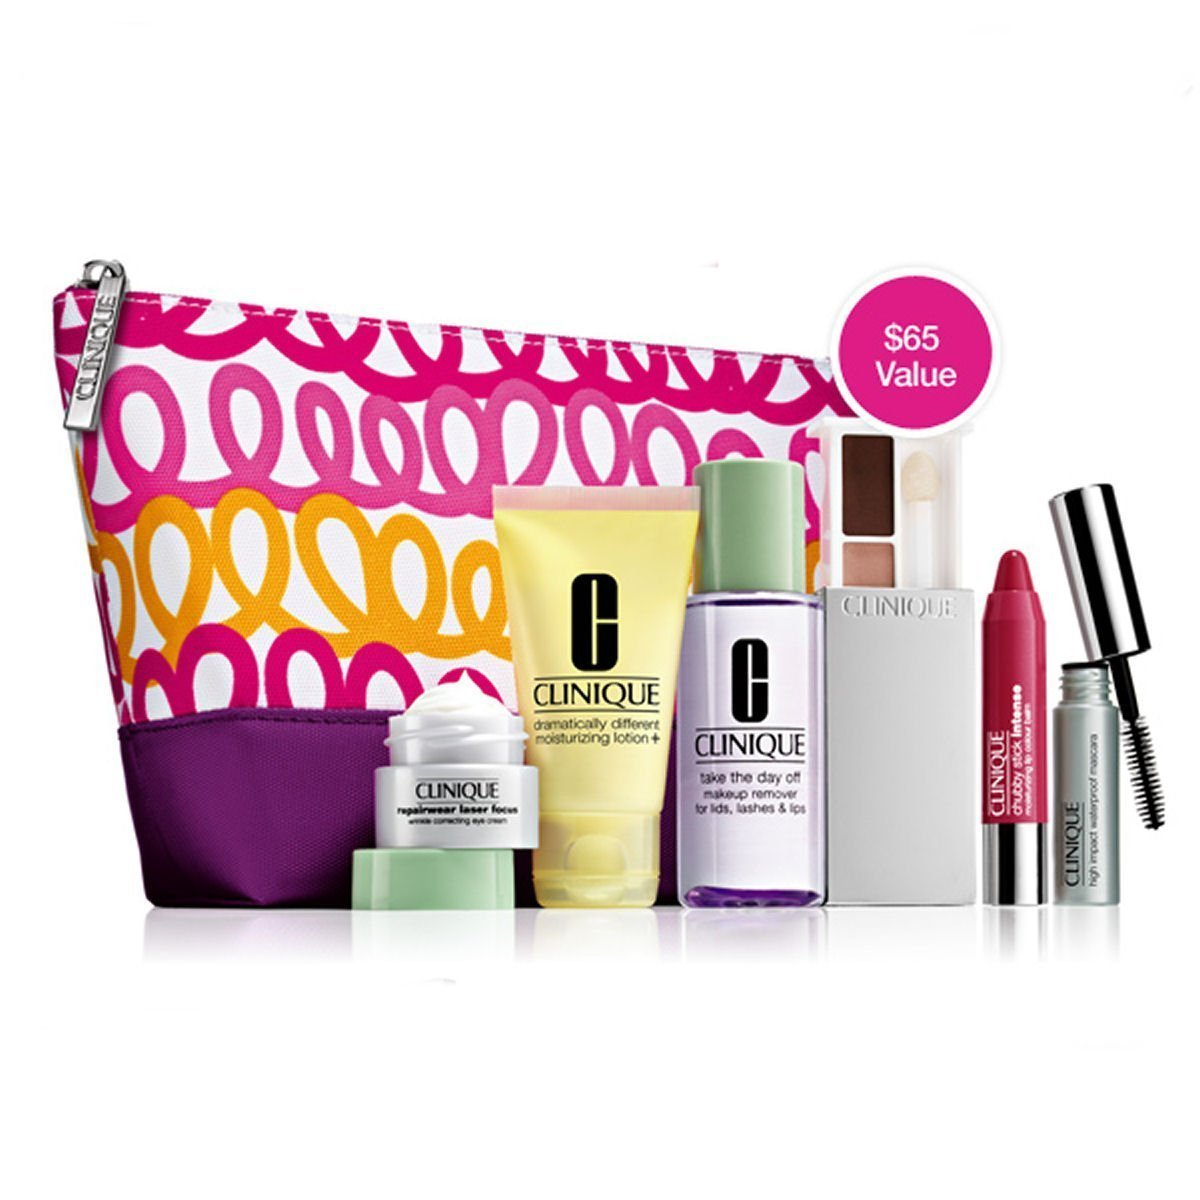 Clinique Official 2013 Gift Set only $22.48 (Reg. $65)  - Sisters Shopping Farm and Home